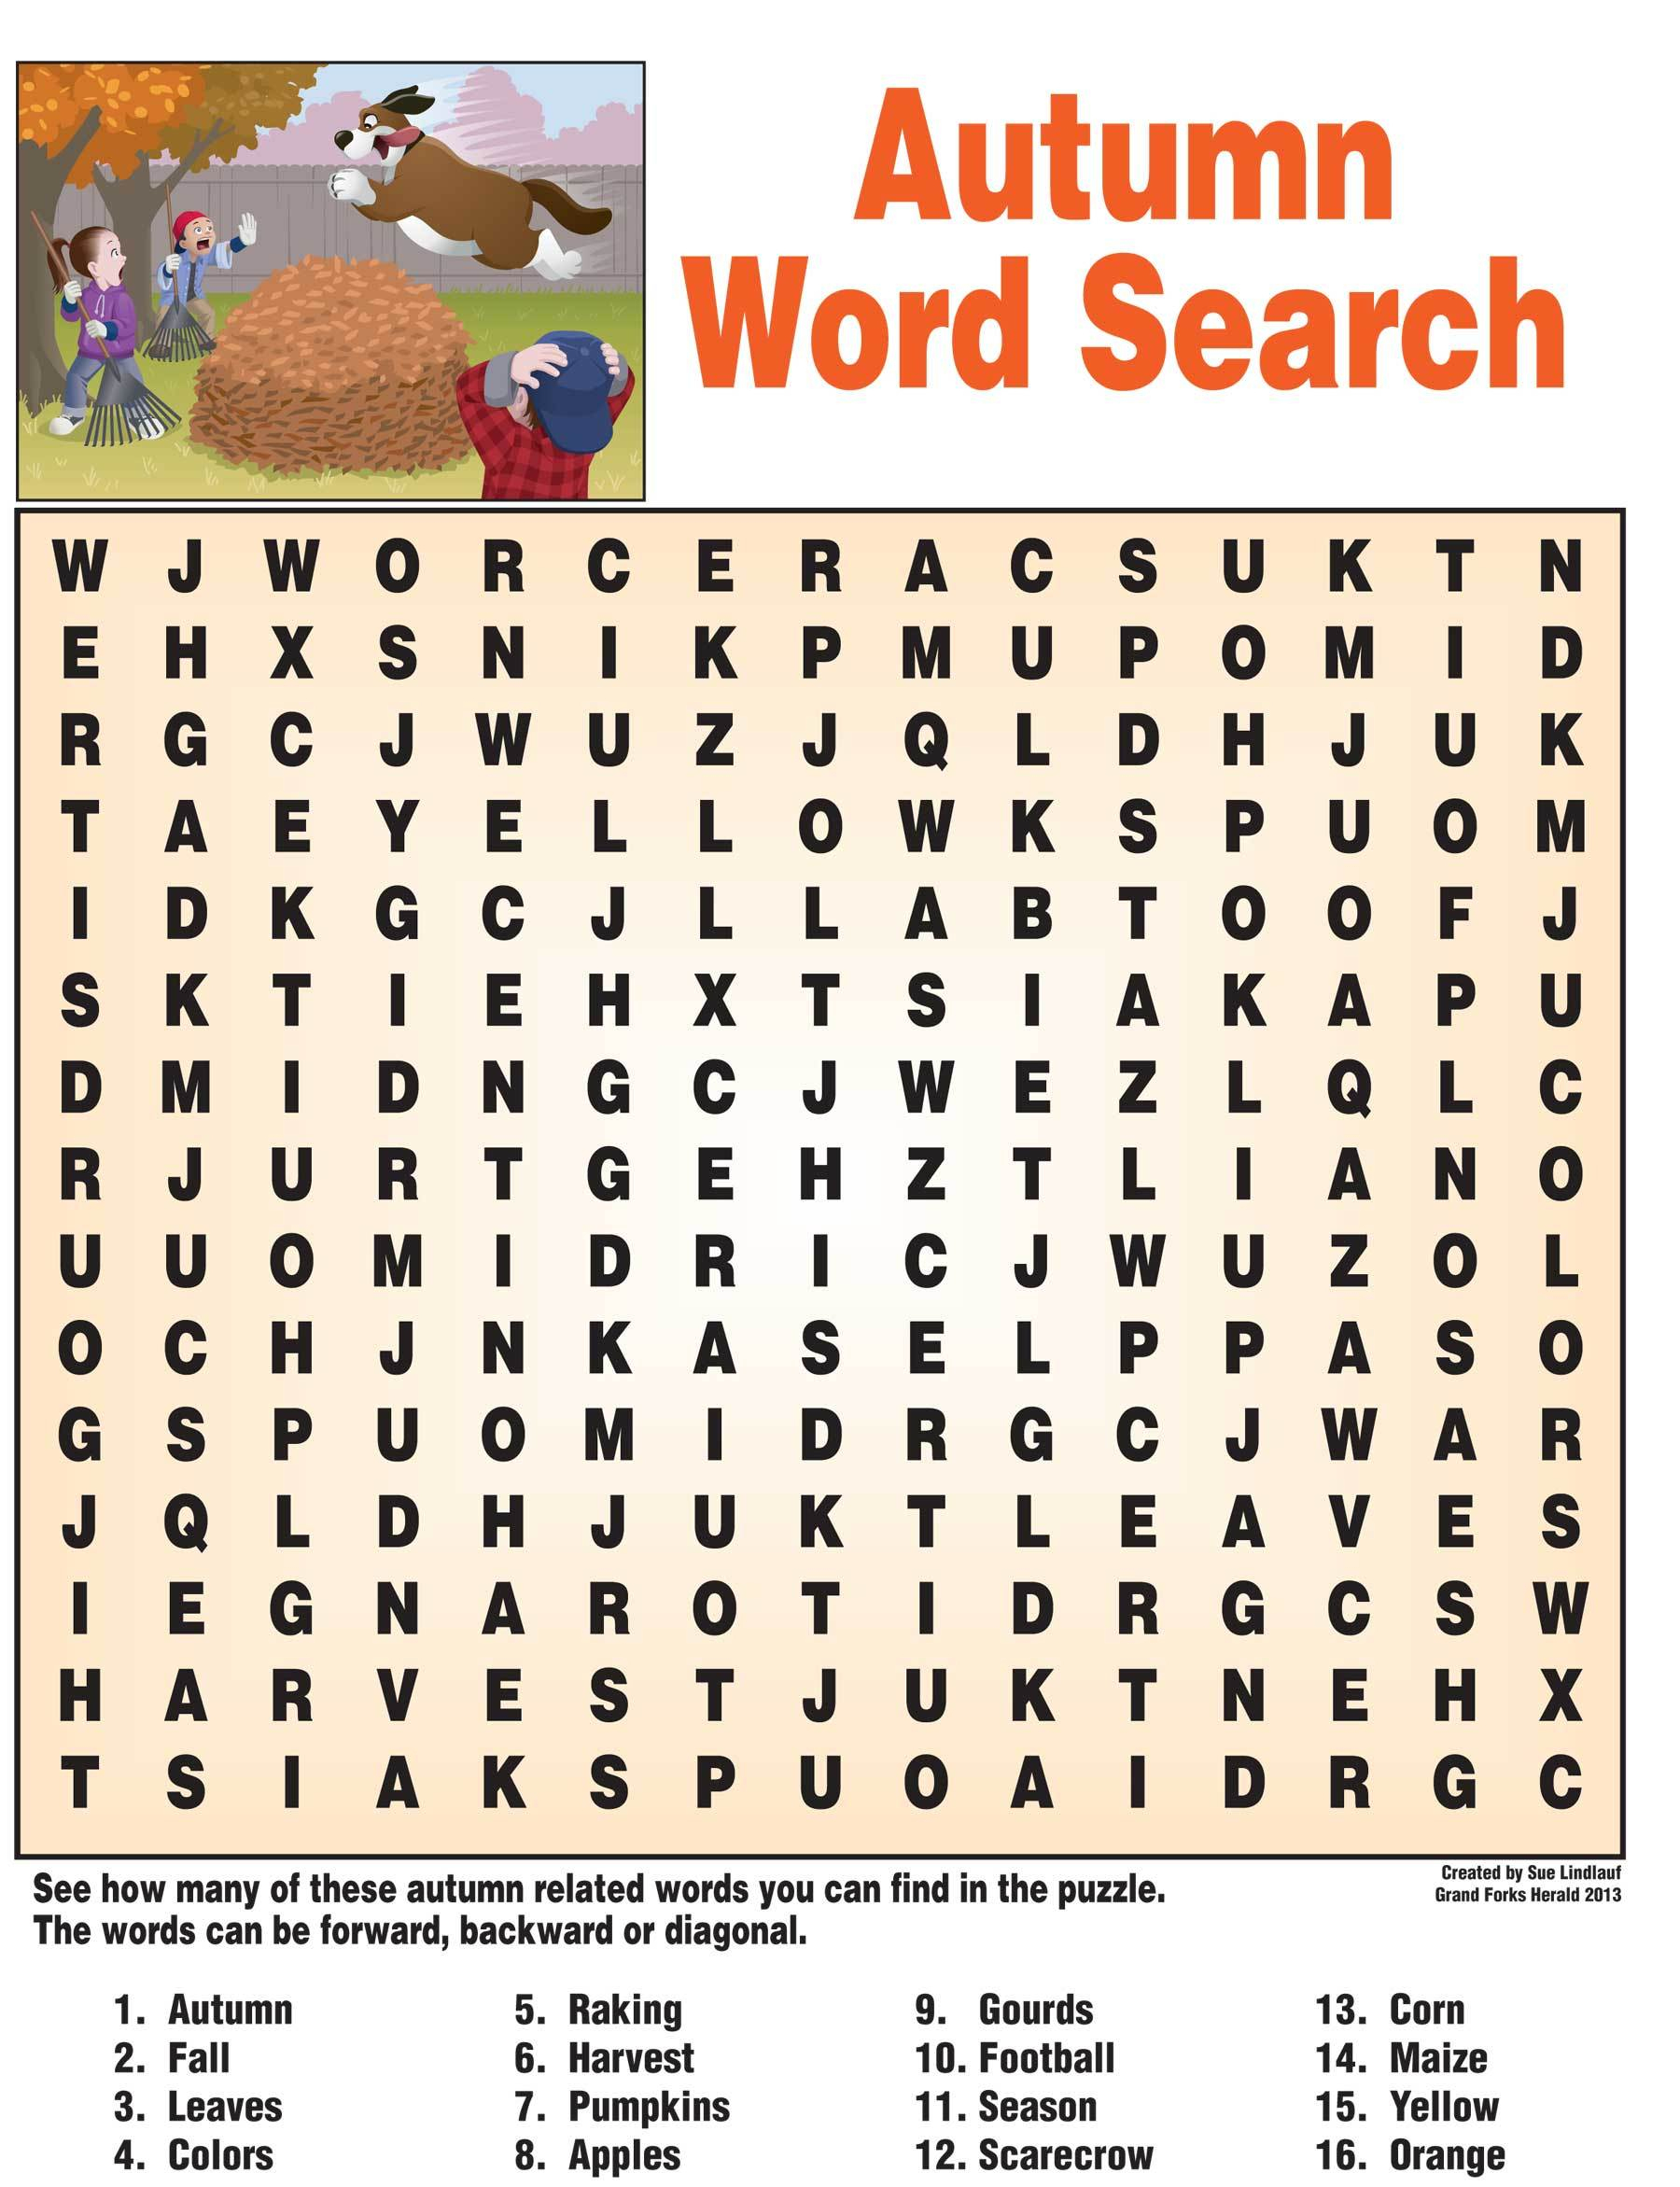 Free Printable Word Searches For Middle School Students – Ezzy - Free Printable Word Searches For Middle School Students